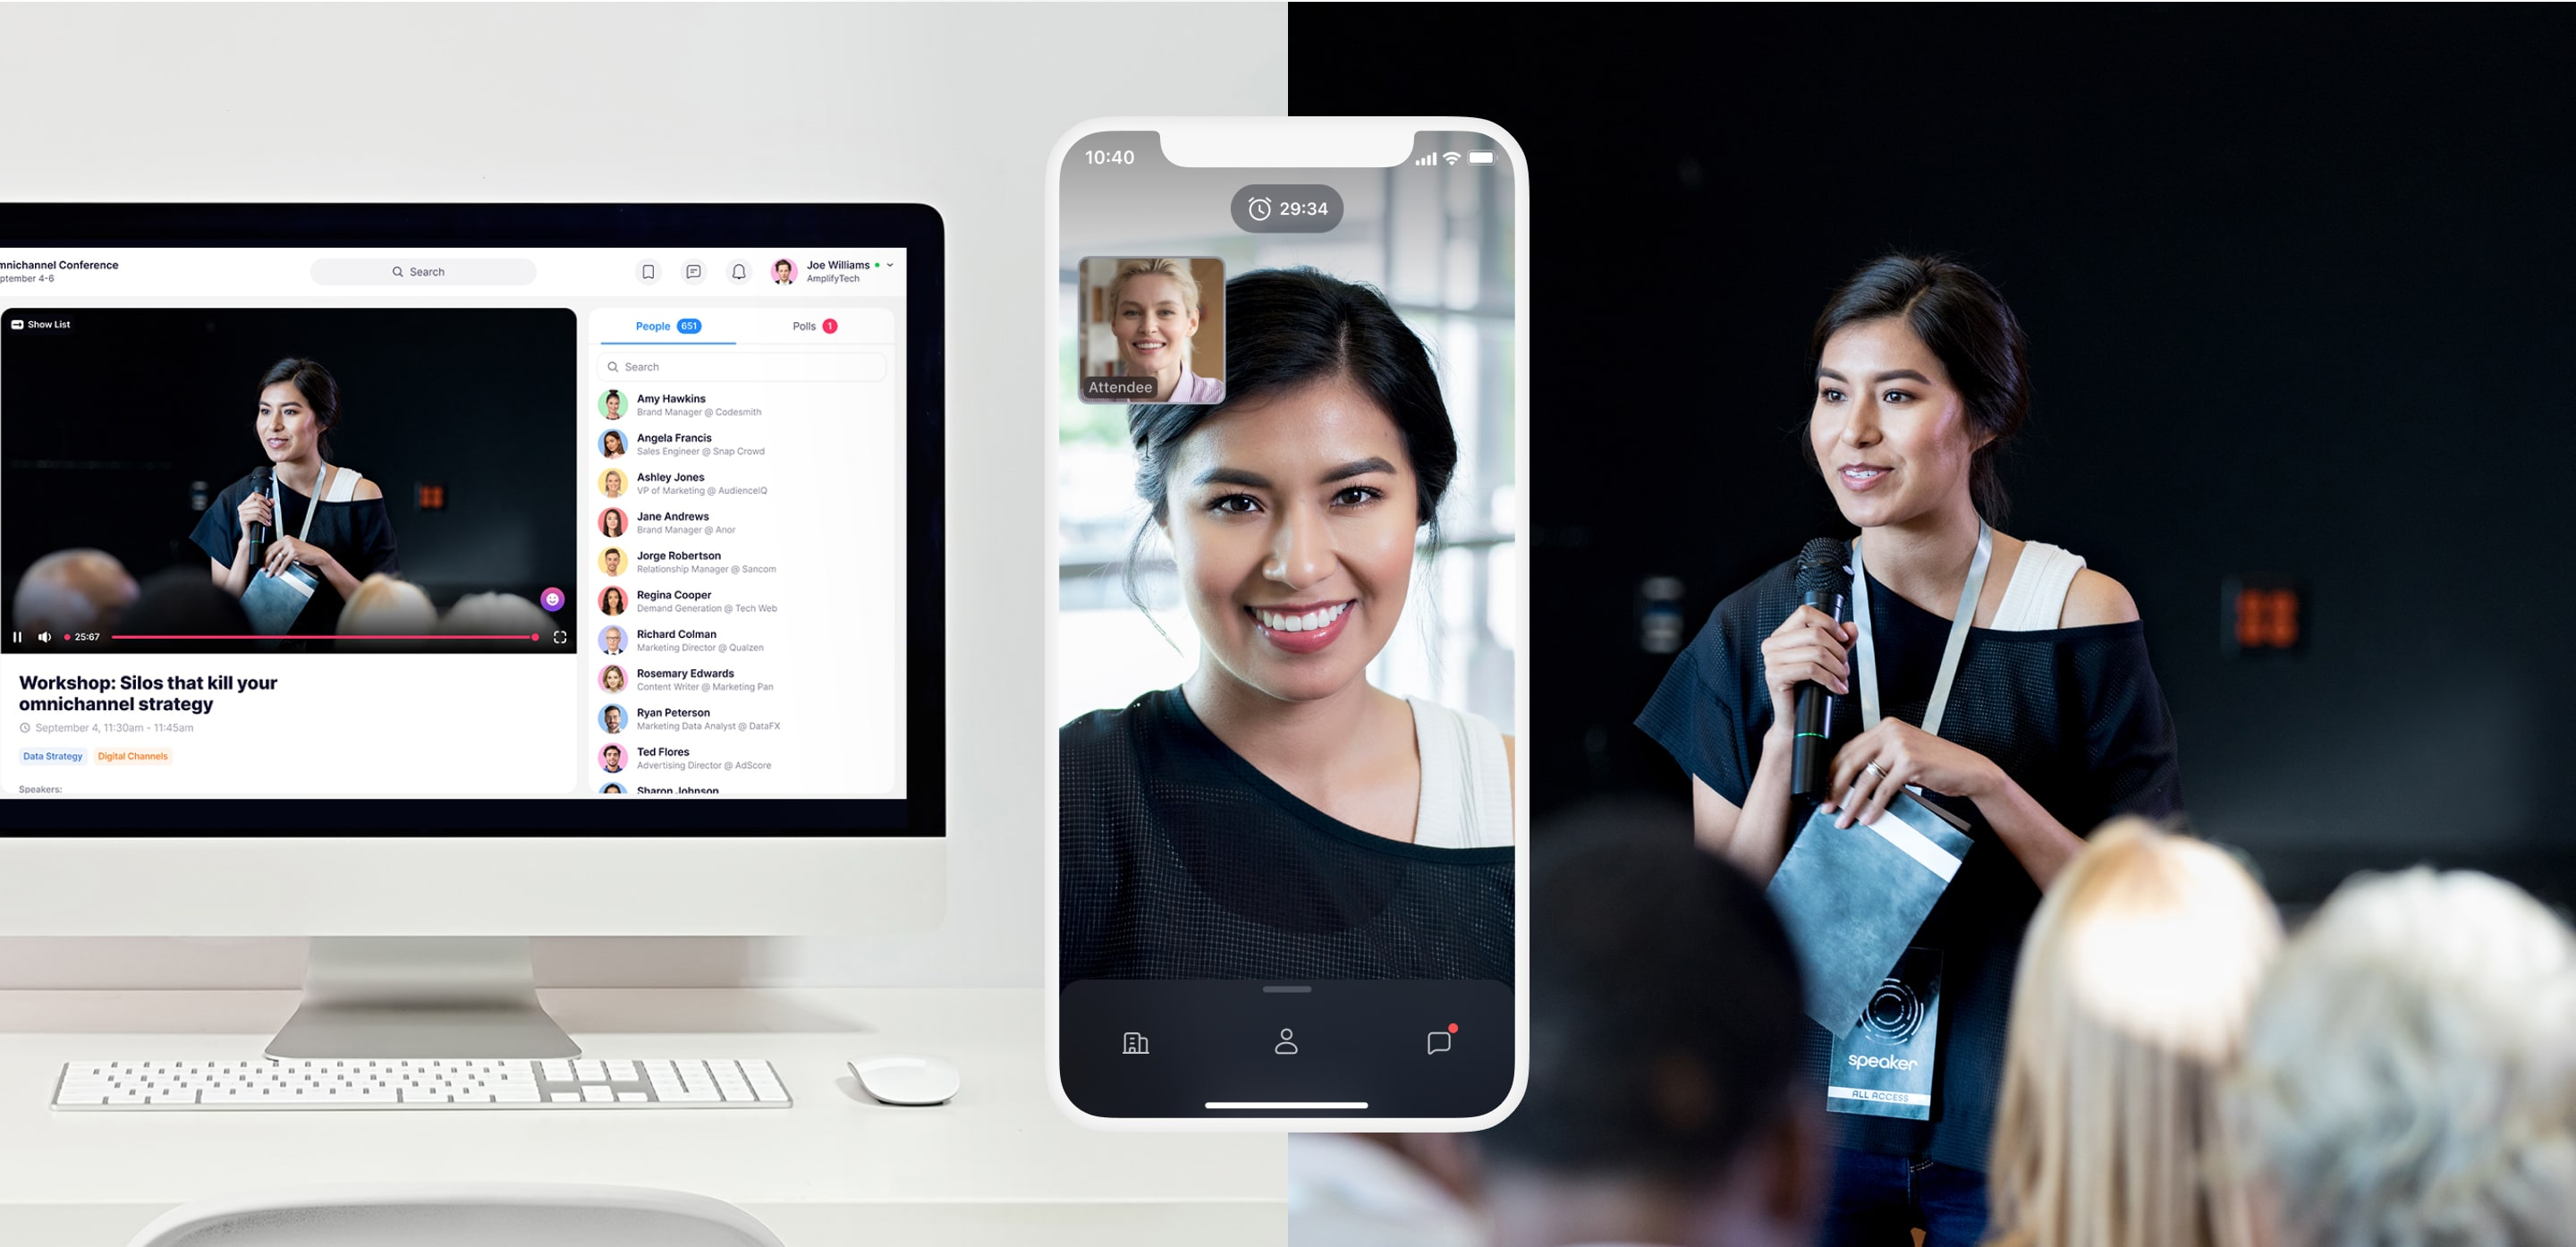 Attendify's mobile and online event platform is the solution for connecting in-person and virtual event audiences